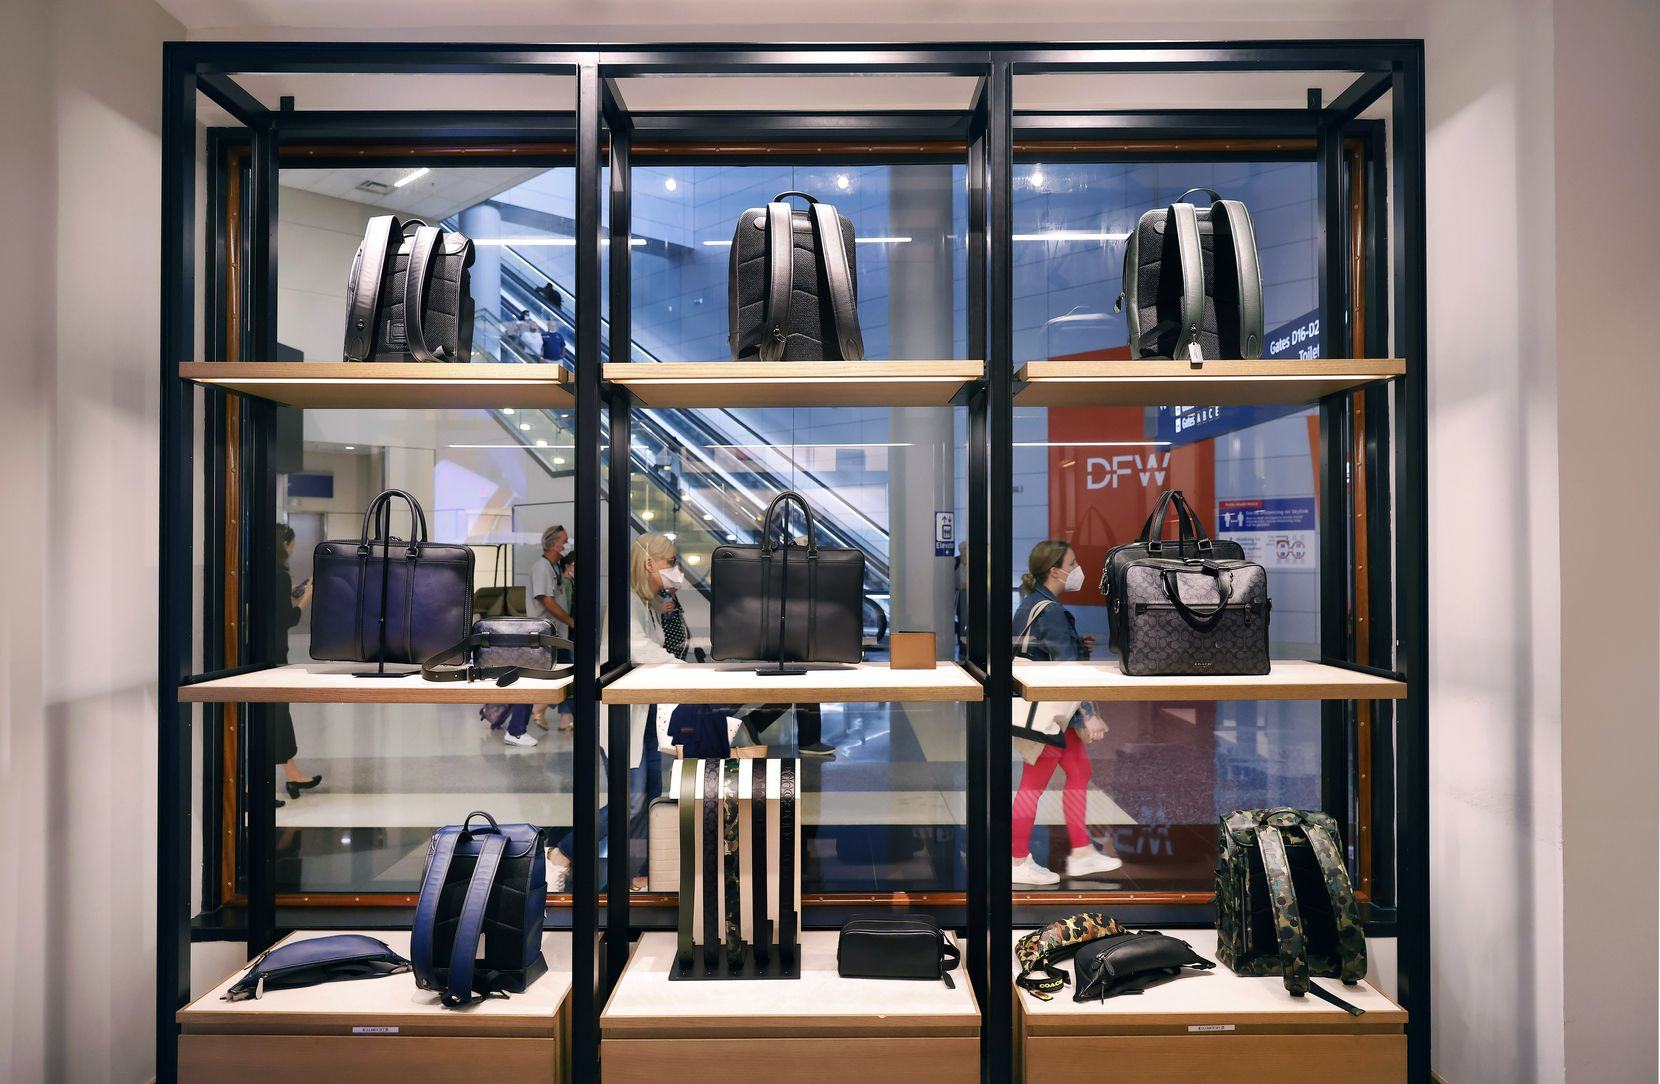 On Friday, travelers walk past a Coach store that showcases handbags and backpacks in Terminal D at DFW Airport.